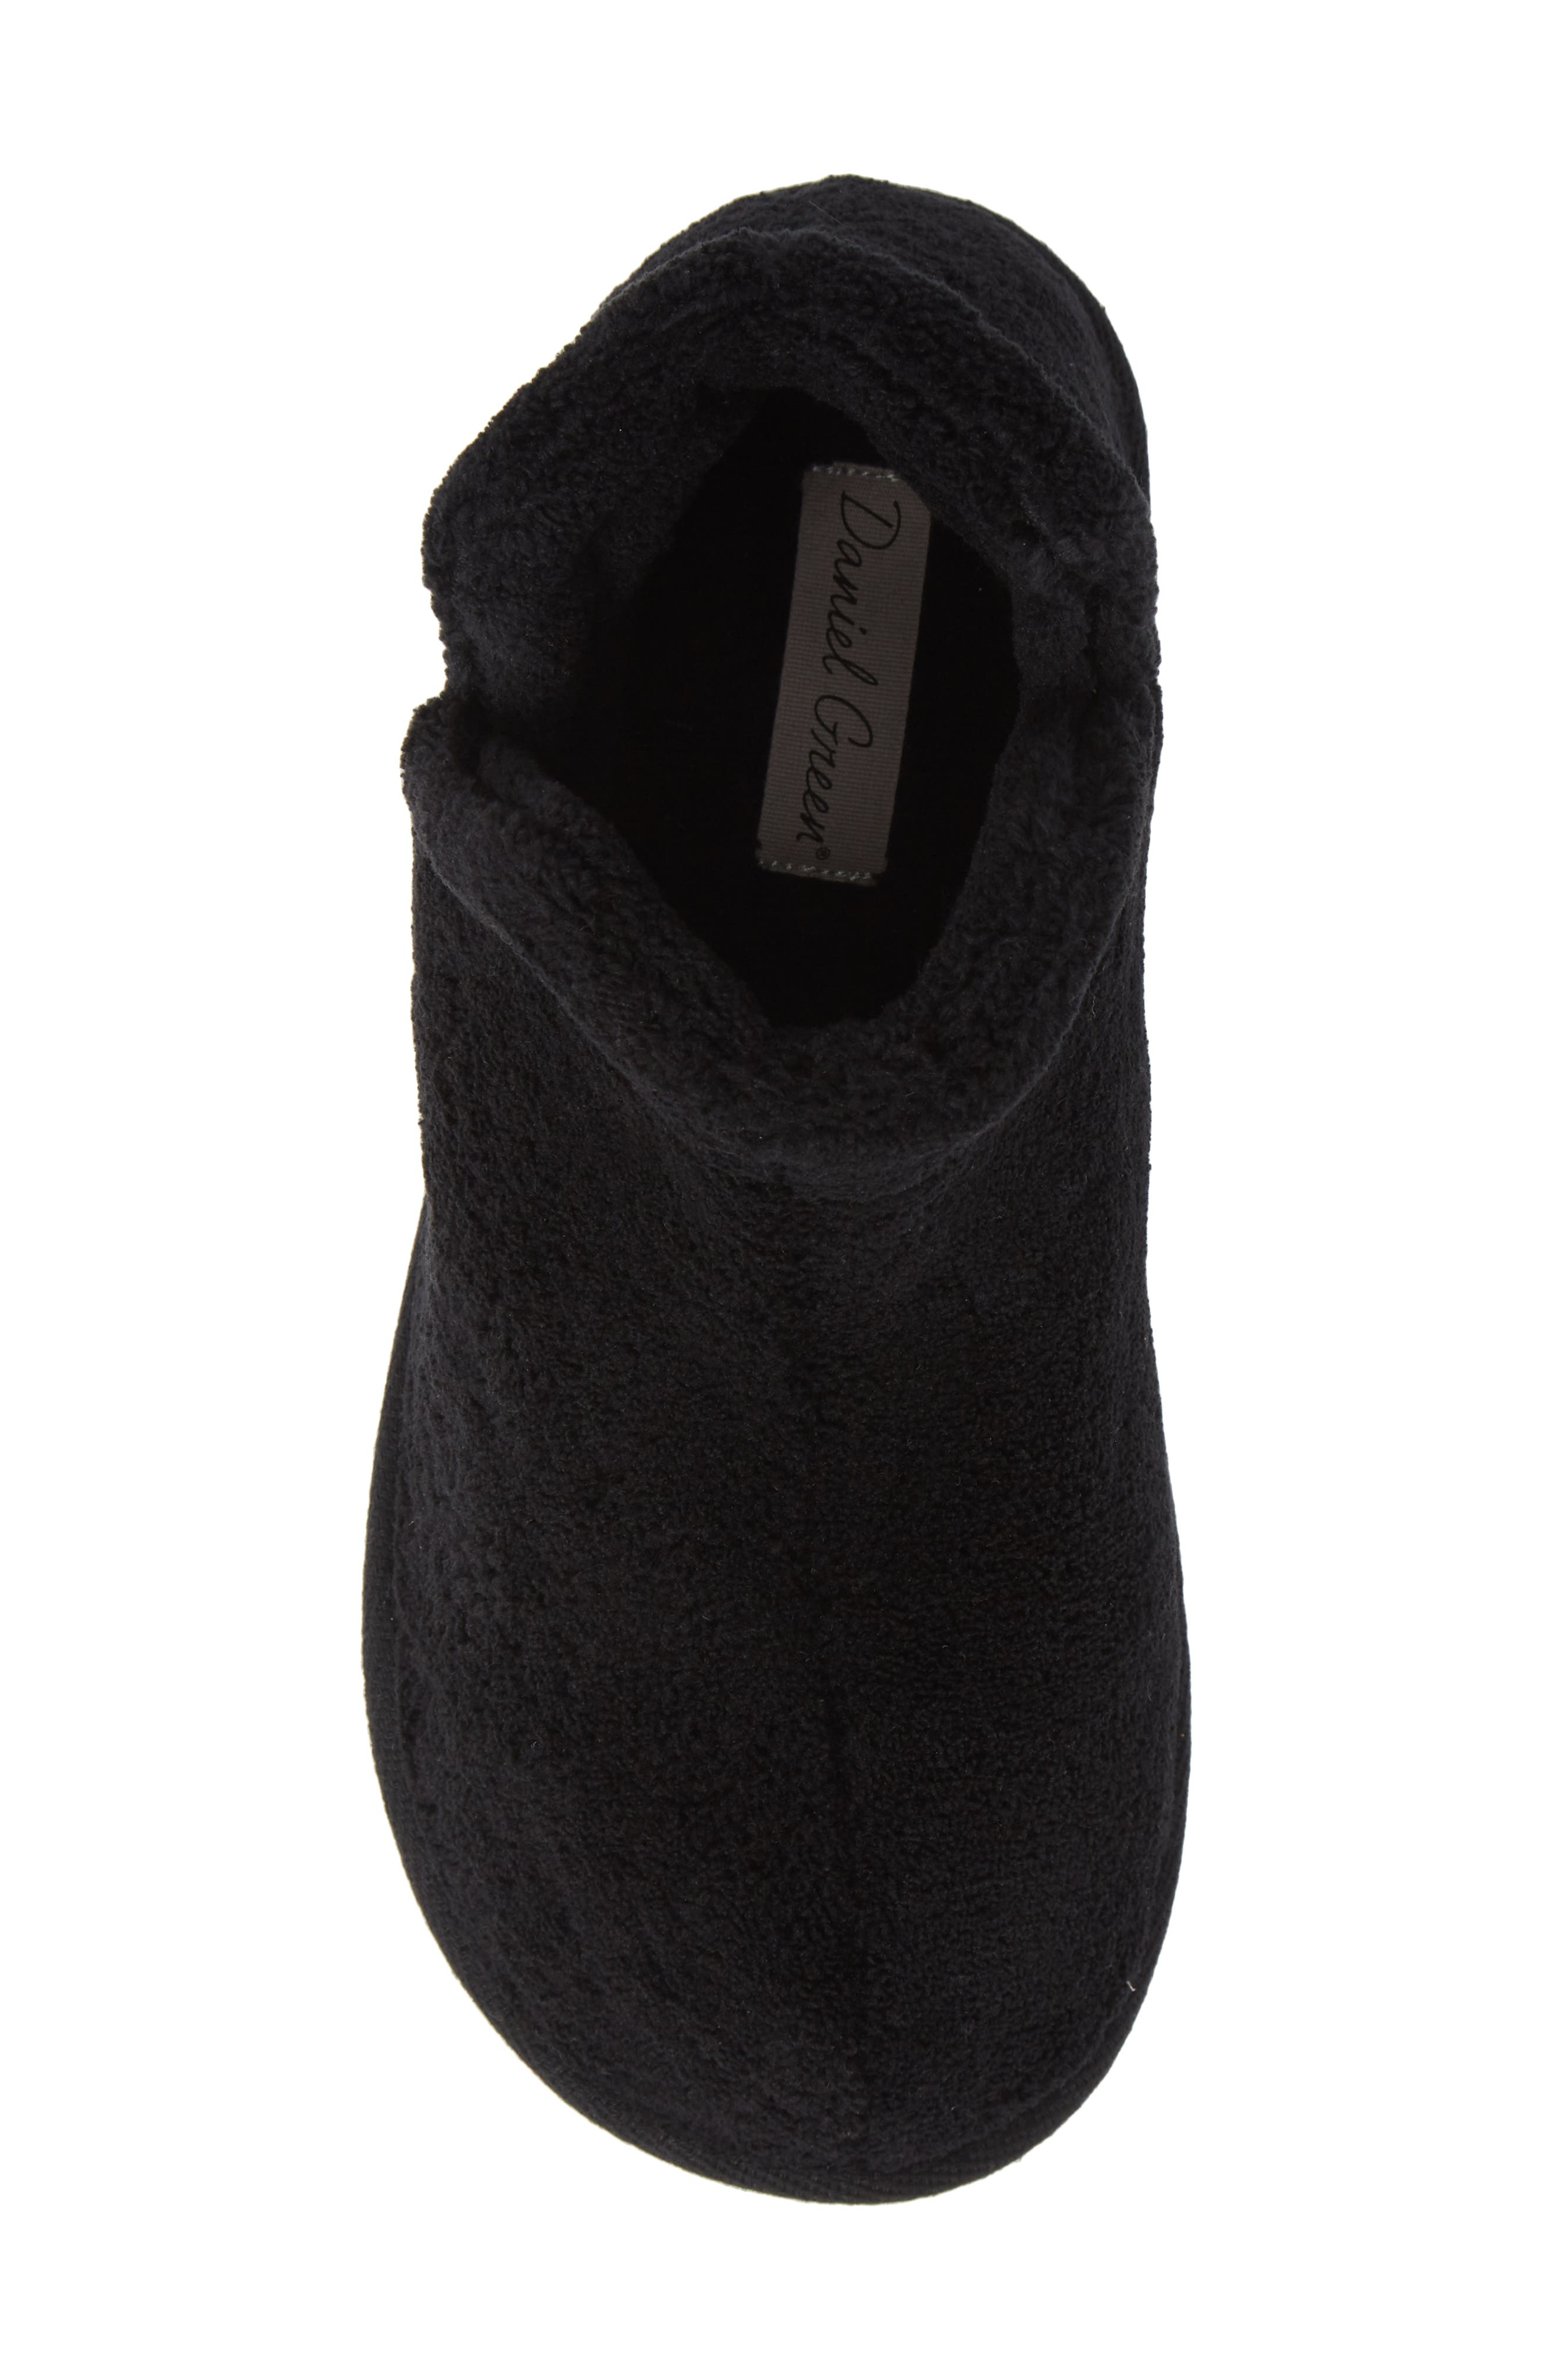 Evalyn Slipper Bootie,                             Alternate thumbnail 5, color,                             BLACK FABRIC